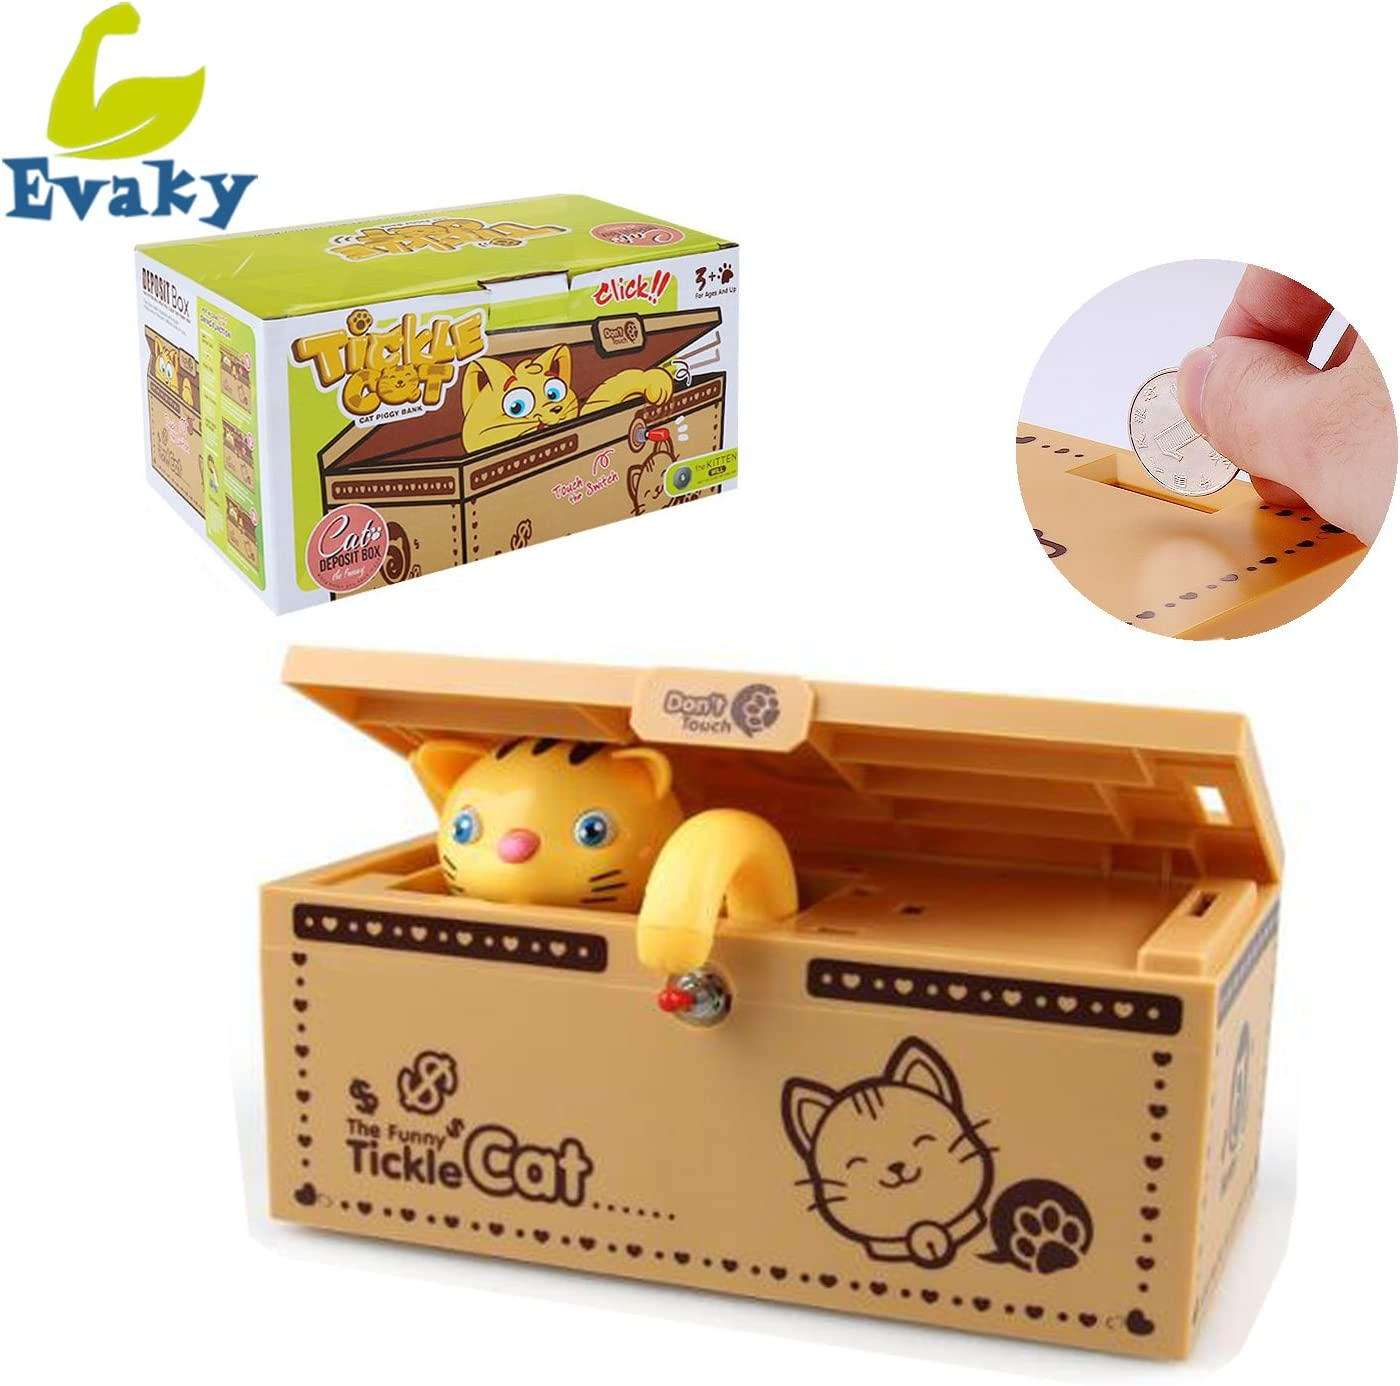 Evaky Creative Cartoon Useless Box Eat Money Cat Piggy Bank Electronic Coin Bank with Music and Light Funny Money Box Toy Gift Desk Decoration